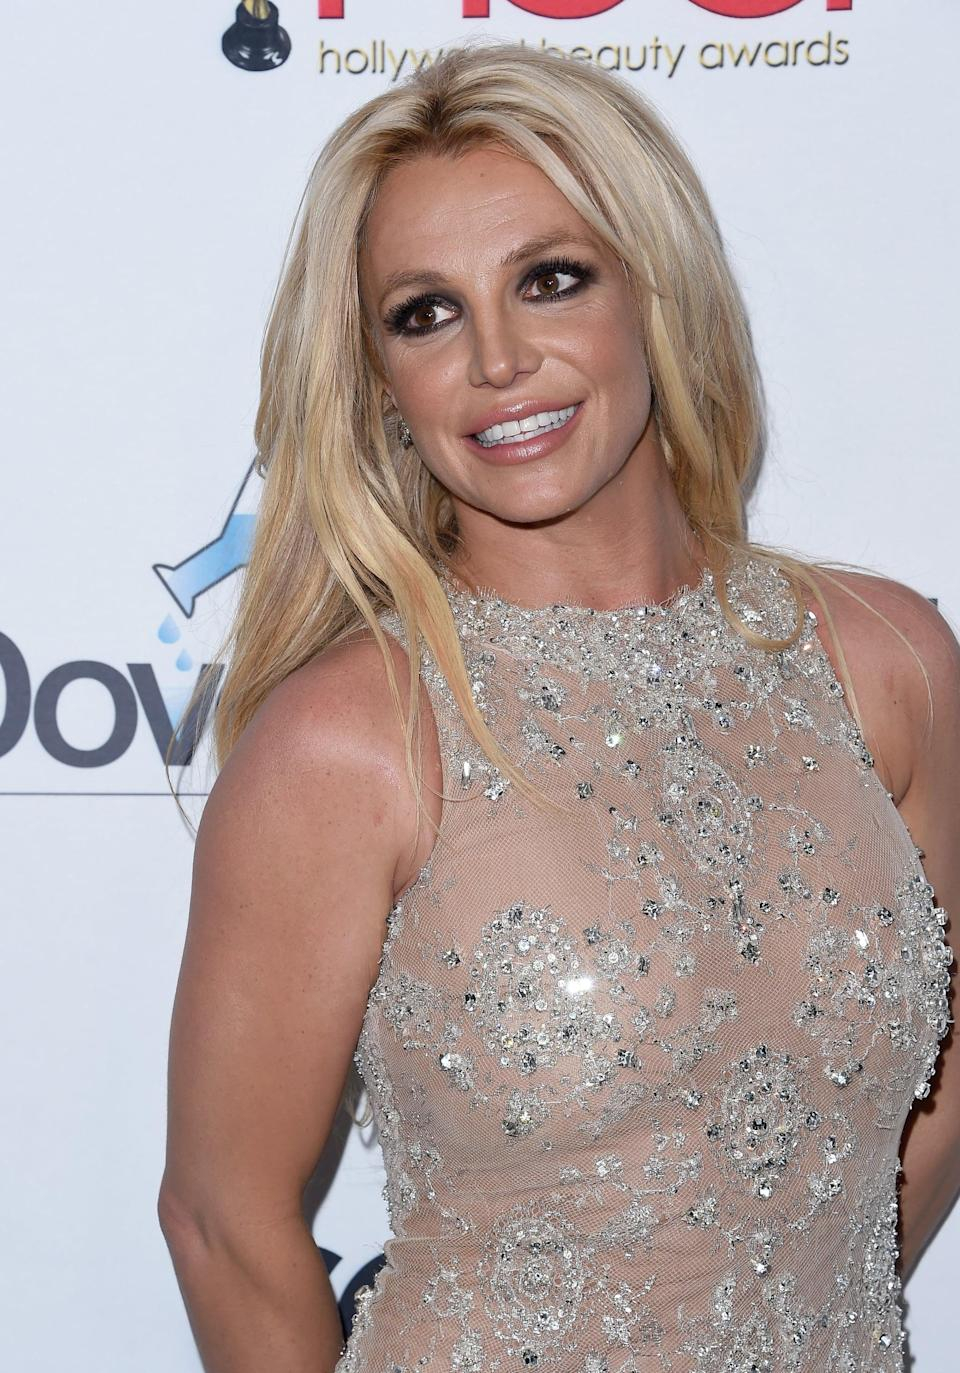 """<p>Nearly a month after Britney first broke her silence about the conservatorship, her lawyer Mathew Rosengart <a href=""""https://www.nytimes.com/2021/07/26/arts/music/britney-spears-conservatorship-father-jamie.html"""" class=""""link rapid-noclick-resp"""" rel=""""nofollow noopener"""" target=""""_blank"""" data-ylk=""""slk:has filed to replace Jamie Spears"""">has filed to replace Jamie Spears</a> with certified public accountant Jason Rubin. According to <strong>CNBC</strong>, <a href=""""https://www.cnbc.com/2021/07/26/britney-spears-attorney-seeks-to-have-a-cpa-as-new-conservator.html"""" class=""""link rapid-noclick-resp"""" rel=""""nofollow noopener"""" target=""""_blank"""" data-ylk=""""slk:Jason is a principal at Certified Strategies"""">Jason is a principal at Certified Strategies</a>, which is a firm that specializes in estate financial management, elder financial abuse investigation, investment fraud investigation, and securities litigation.</p> <p>This move comes fewer than two weeks after Mathew was appointed Britney's lawyer, taking over for court-appointed lawyer Samuel D. Ingham III. """"There might well come a time when the court will be called upon to consider whether the conservatorship should be terminated in its entirety and whether - in addition to stripping his daughter of her dignity, autonomy and certain fundamental liberties - Mr. Spears is also guilty of misfeasance or malfeasance warranting the imposition of surcharges, damages or other legal action against him,"""" Mathew wrote in the filing. The appointment of a new conservator is expected to be <a href=""""https://variety.com/2021/music/news/britney-spears-conservatorship-father-replace-jason-rubin-1235023912/"""" class=""""link rapid-noclick-resp"""" rel=""""nofollow noopener"""" target=""""_blank"""" data-ylk=""""slk:addressed in court on Sept. 29"""">addressed in court on Sept. 29</a>.</p>"""